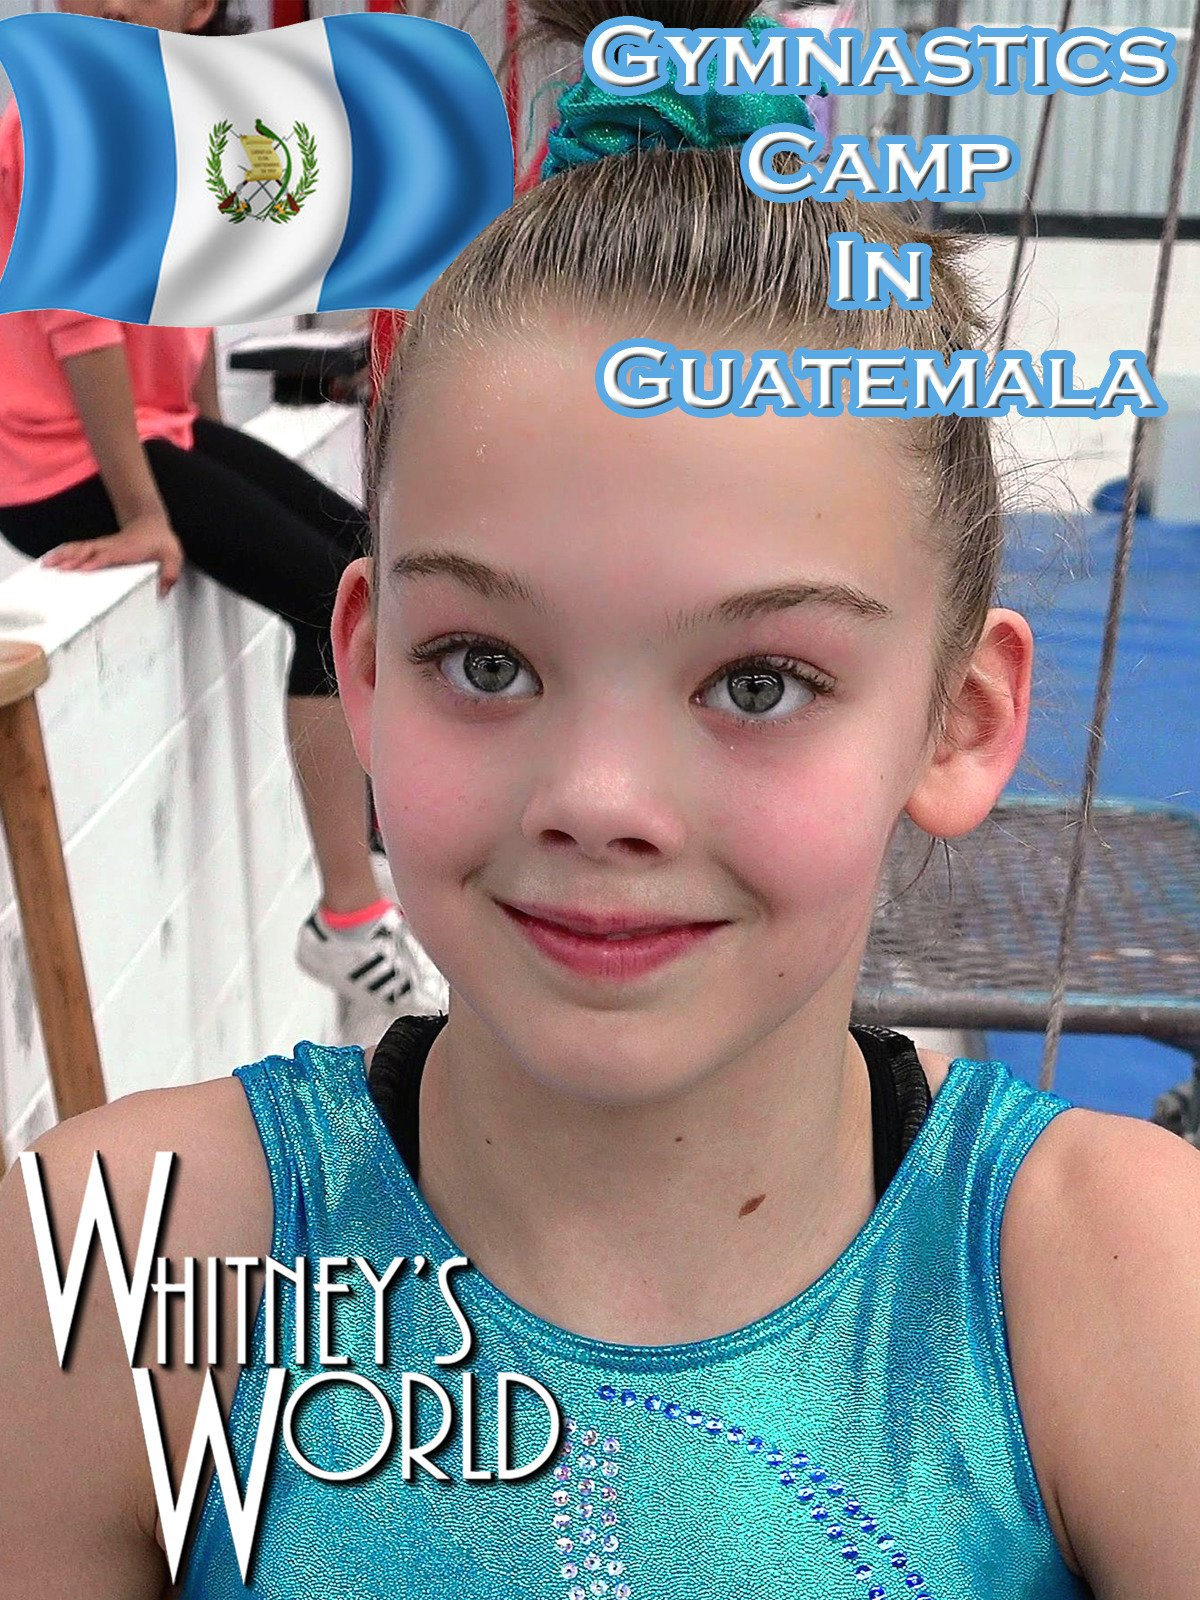 Gymnastics Camp in Guatemala on Amazon Prime Video UK